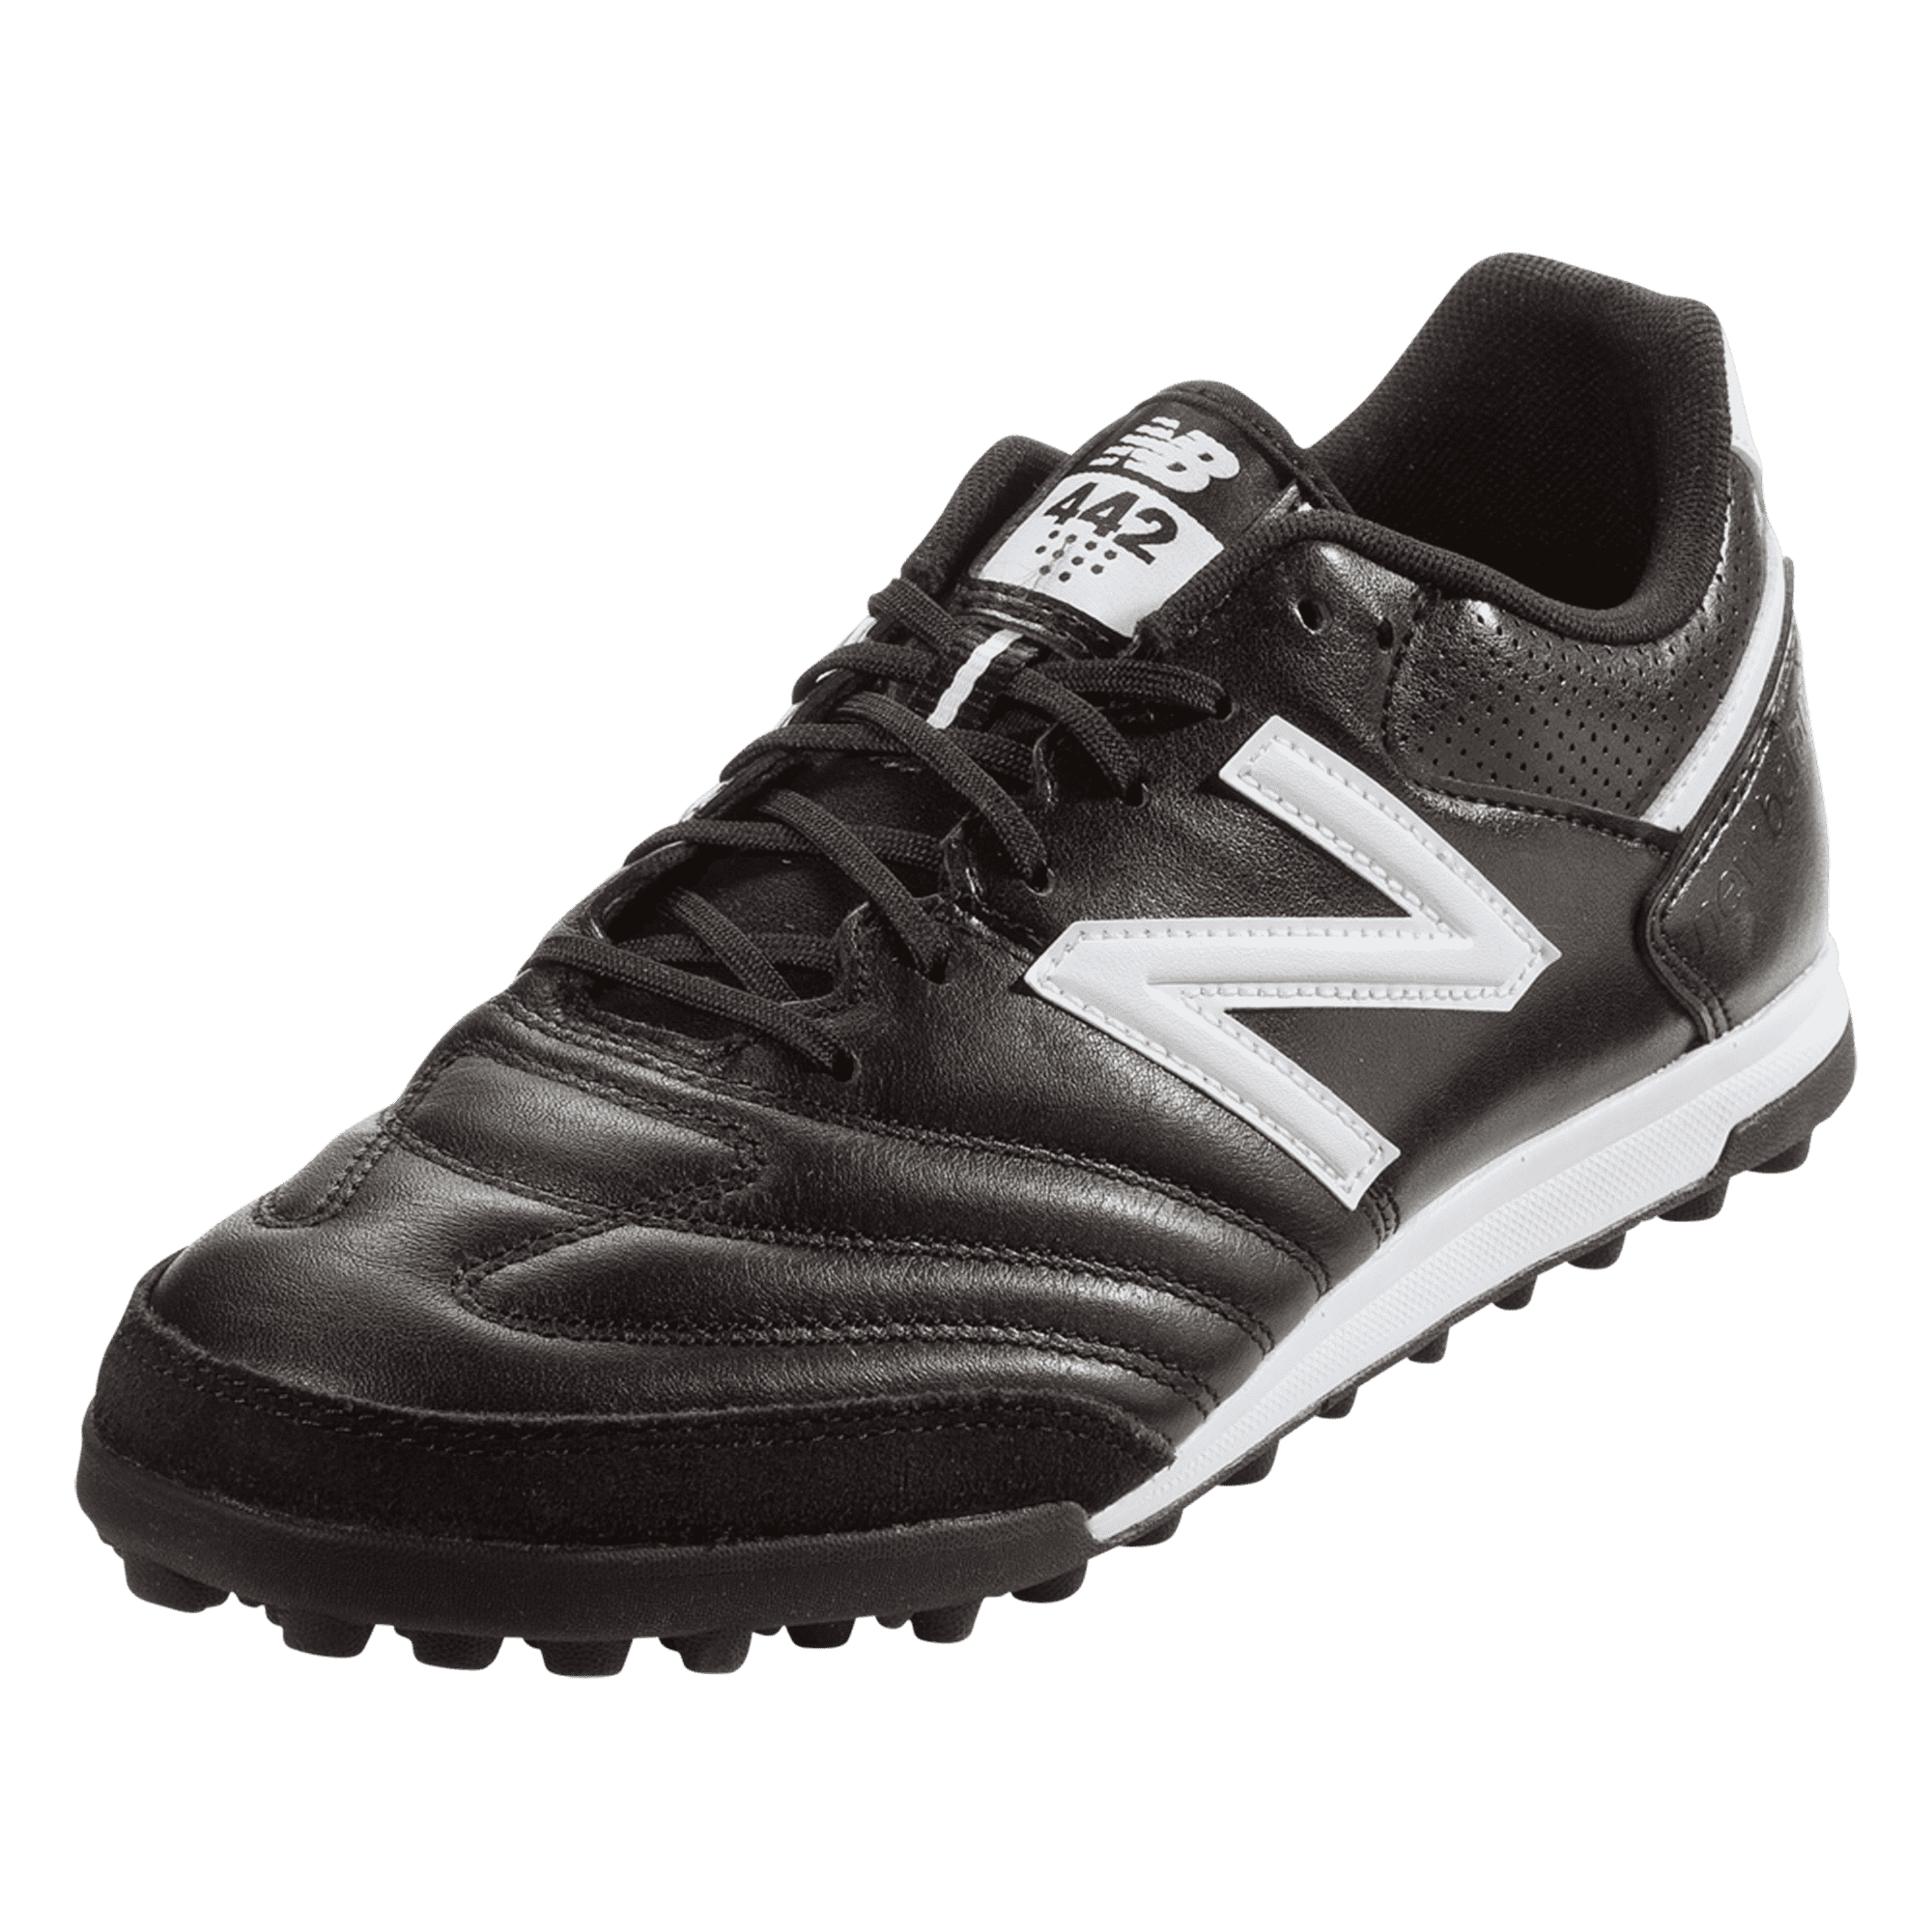 New Balance 442 Team TF Artificial Turf Shoe - Black/White